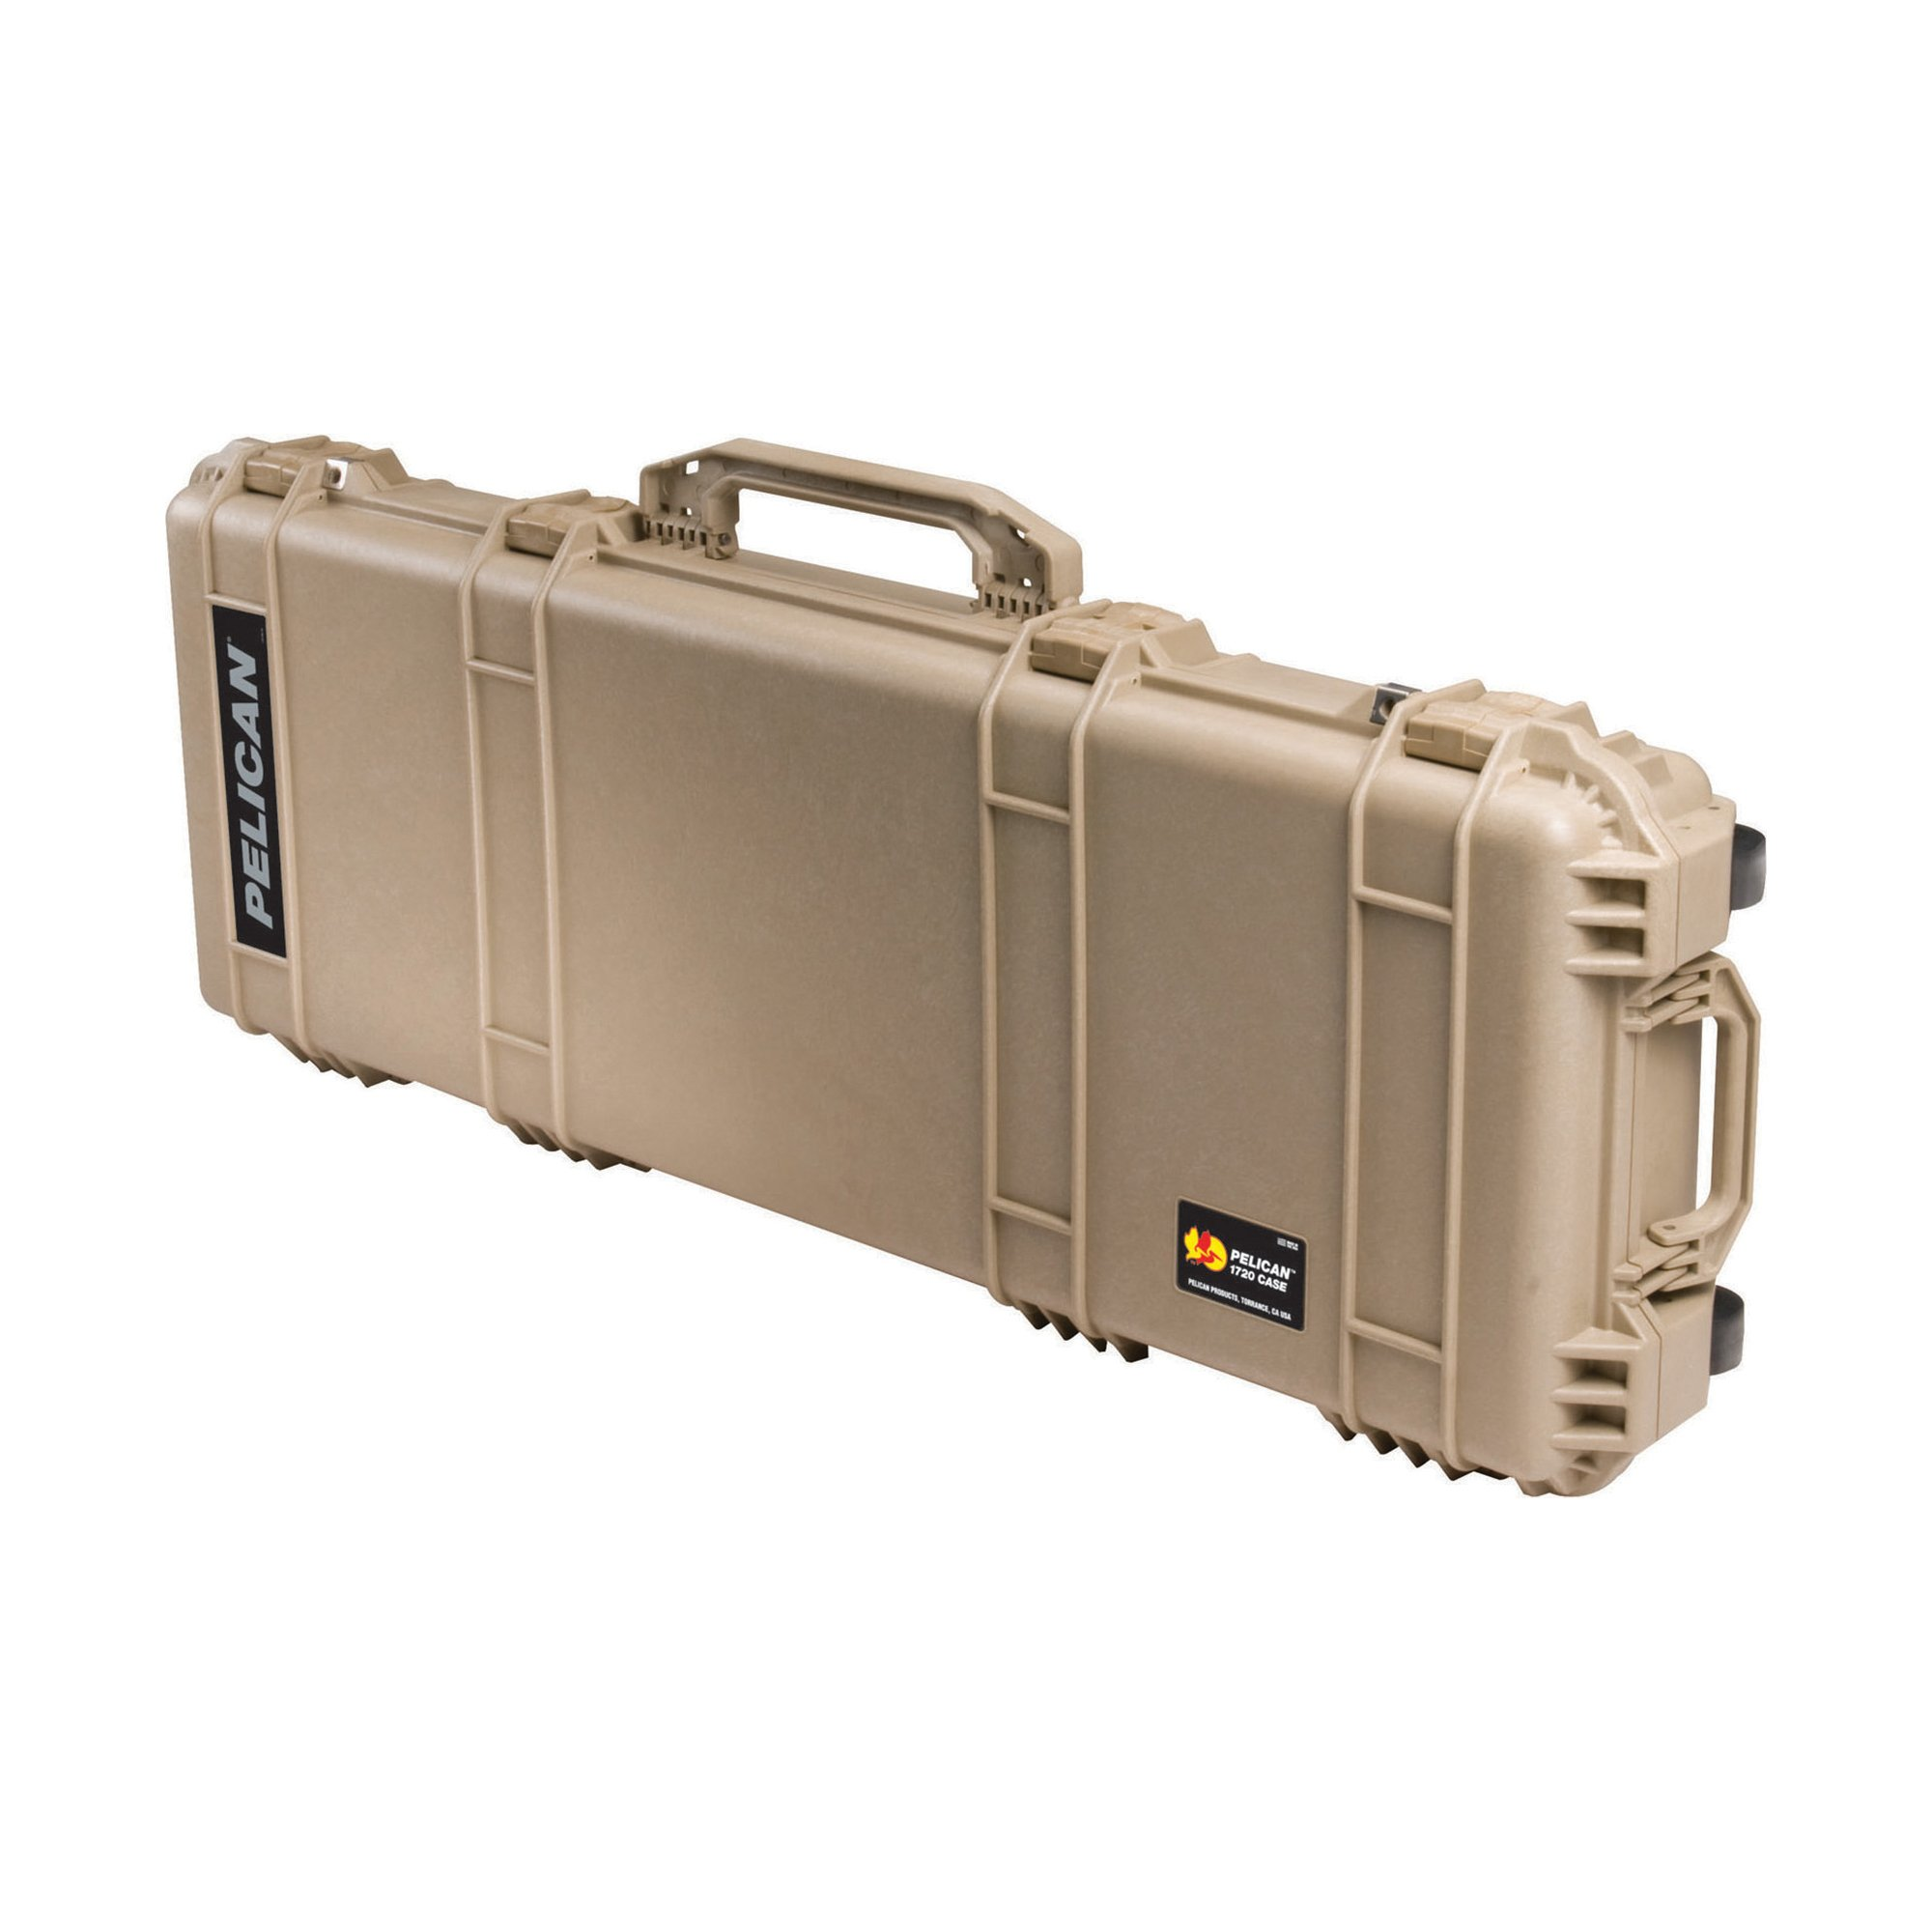 Pelican 1720 Rifle Case With Foam (Desert Tan) by Pelican